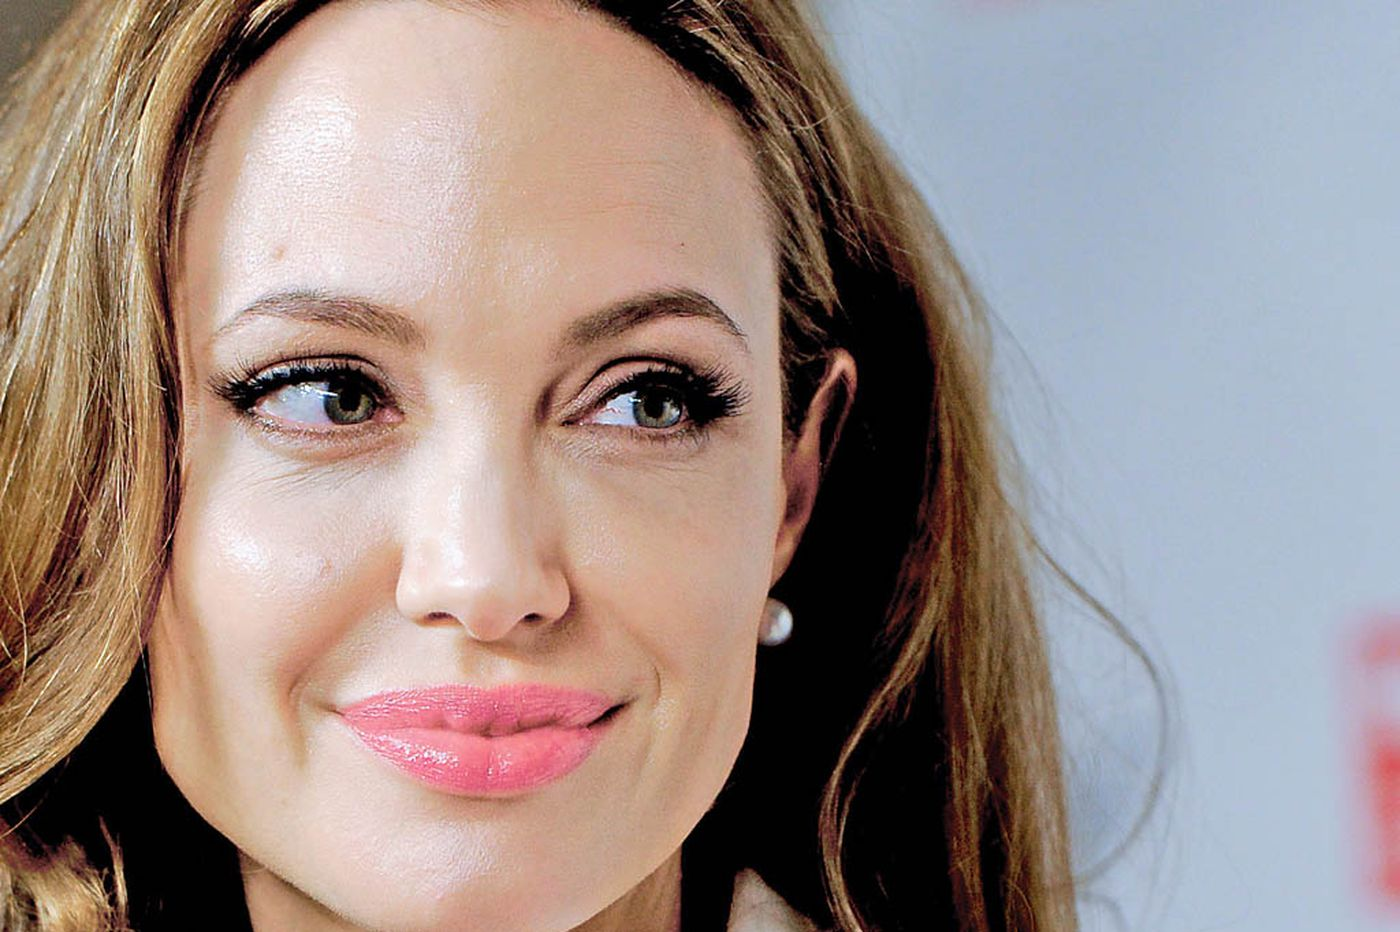 Japan nationalists not singing 'For He's a Jolie Good Fellow'